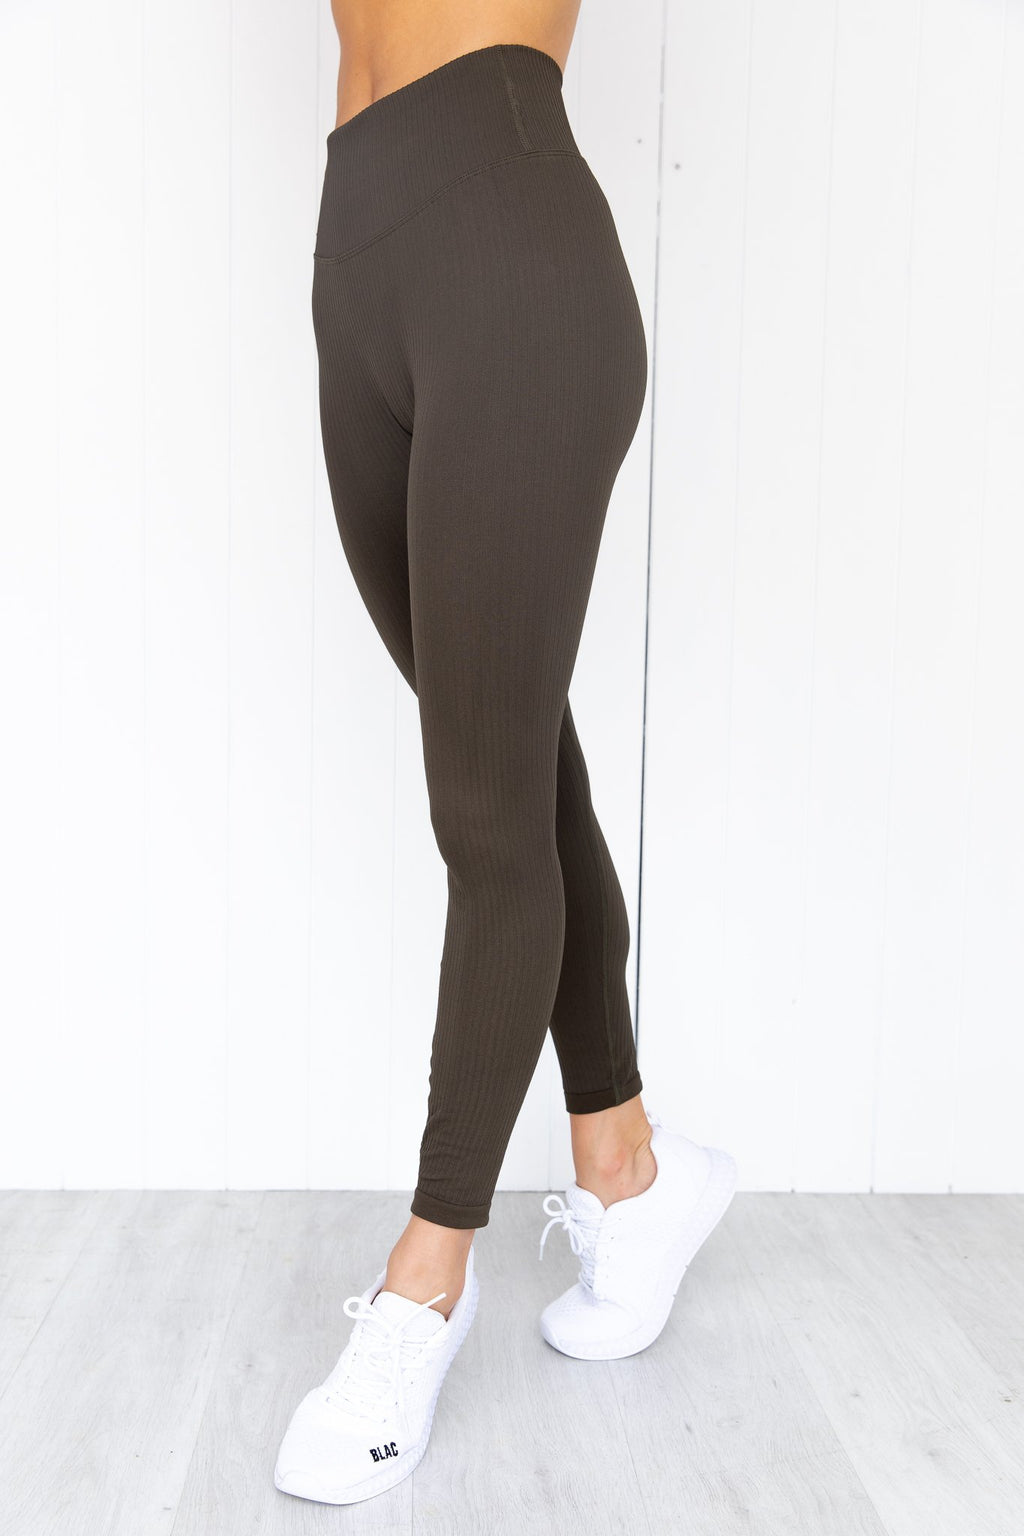 Khaki Ribbed Seamless Tights